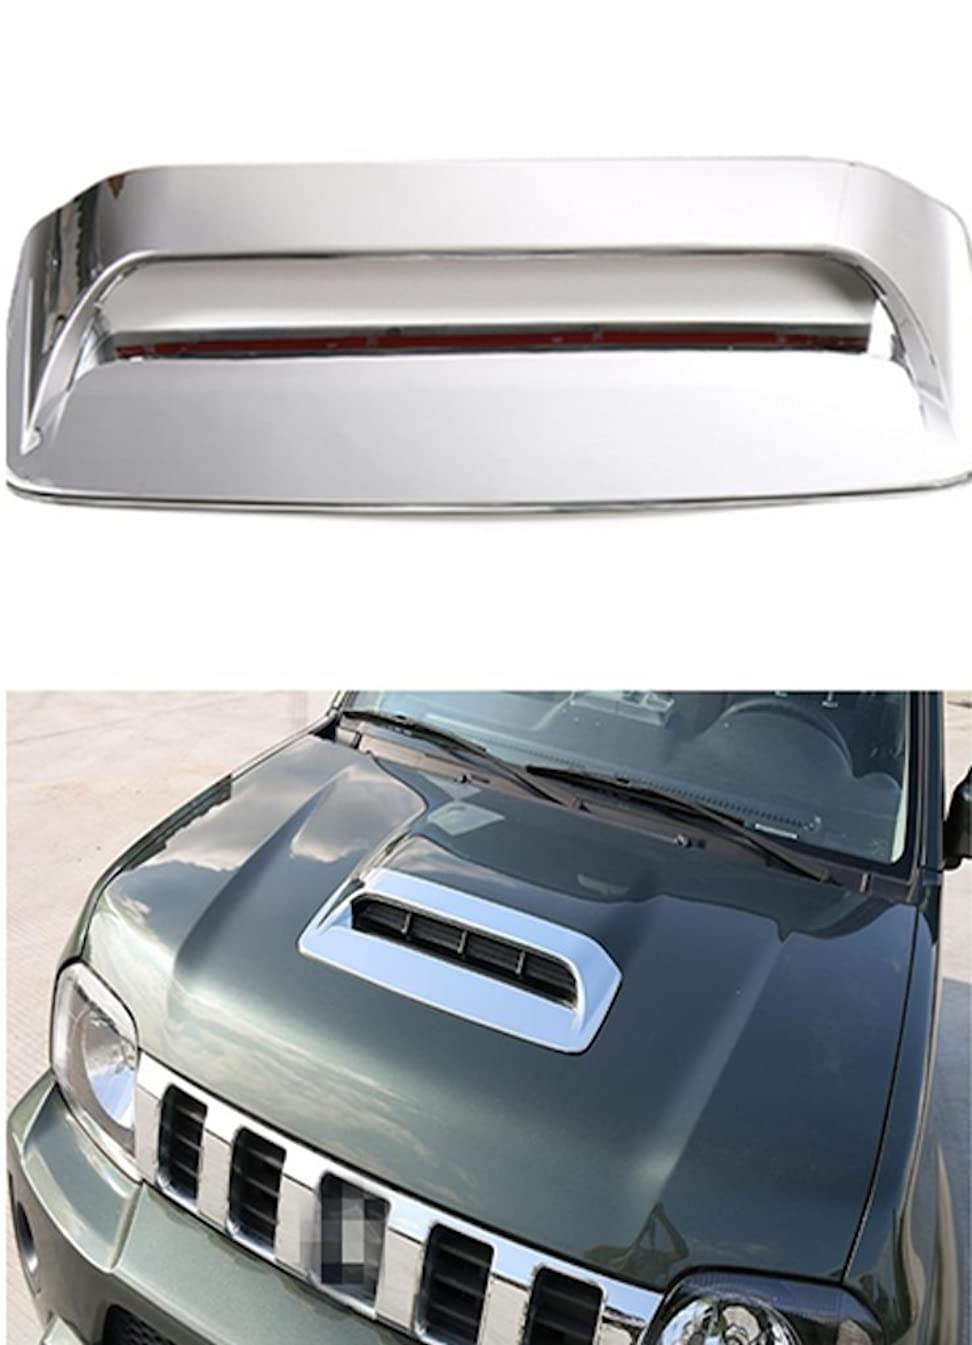 JDopption Chrome Car Styling ABS Air Flow Intake Scoop Vent Bonnet Hood Cover For SUZUKI Jimny 2007 Up